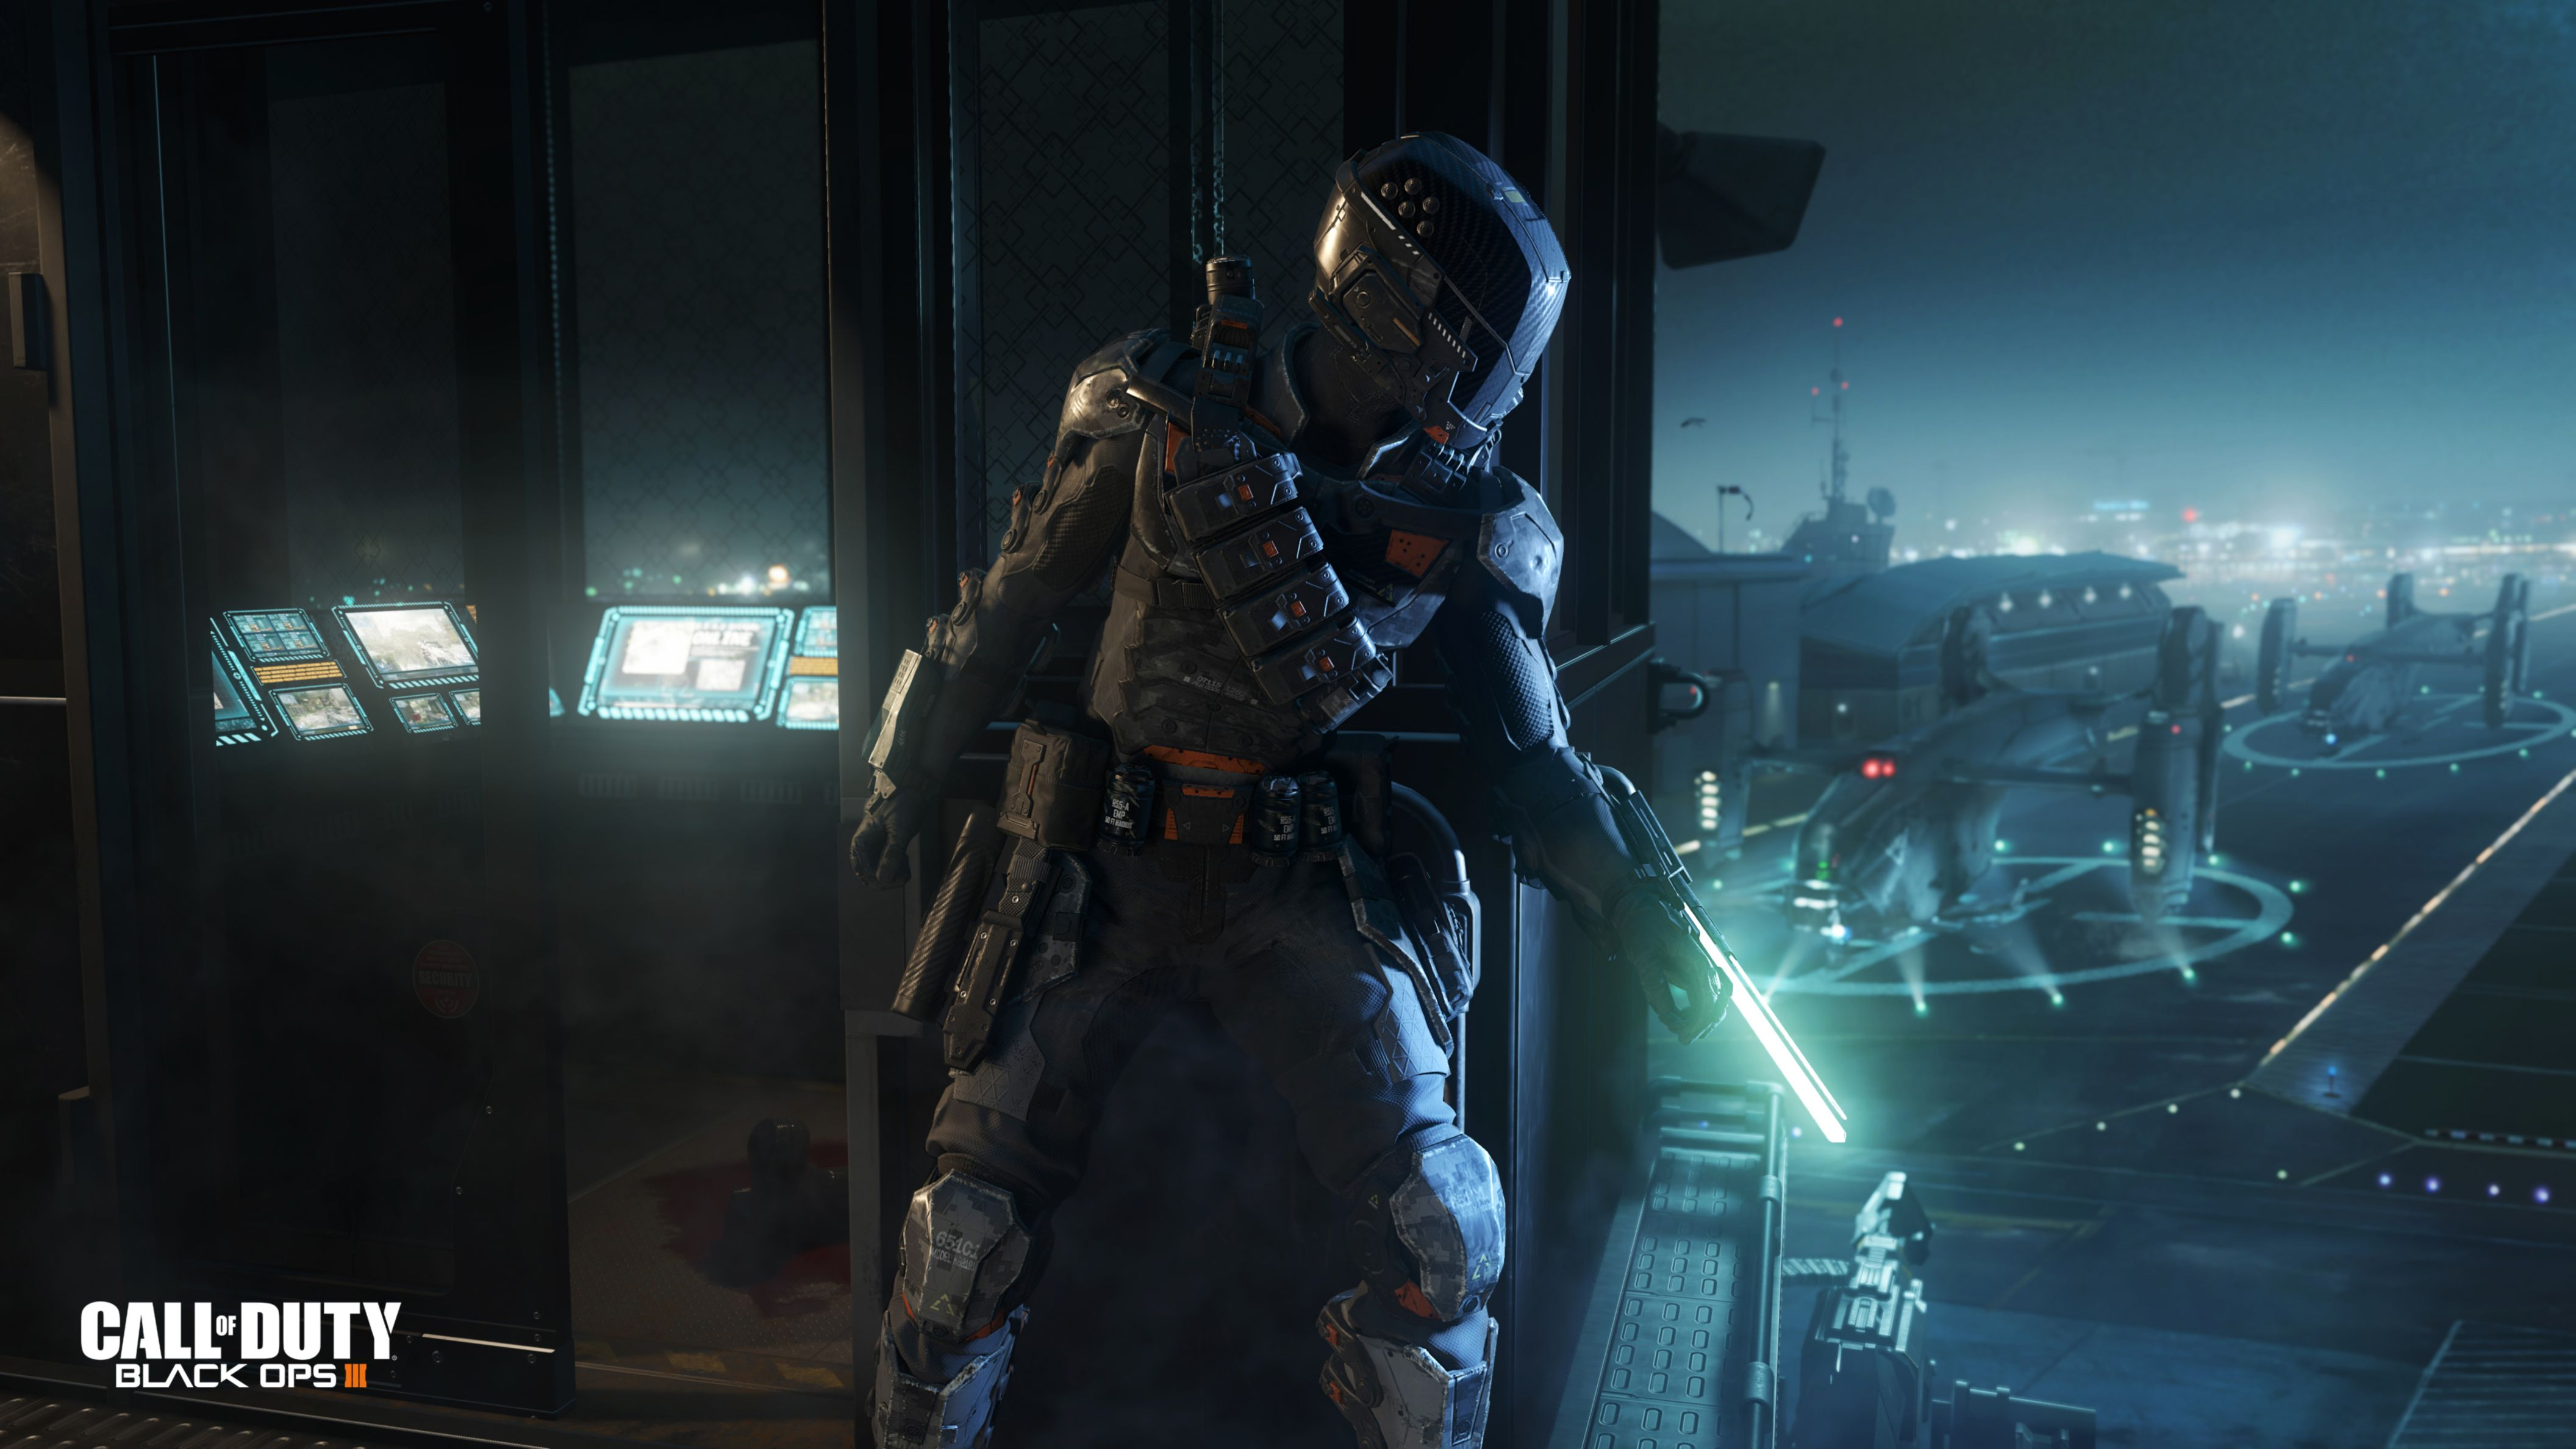 Download free HD Call of Duty Black Ops 3 Spectre HD Wallpaper, image